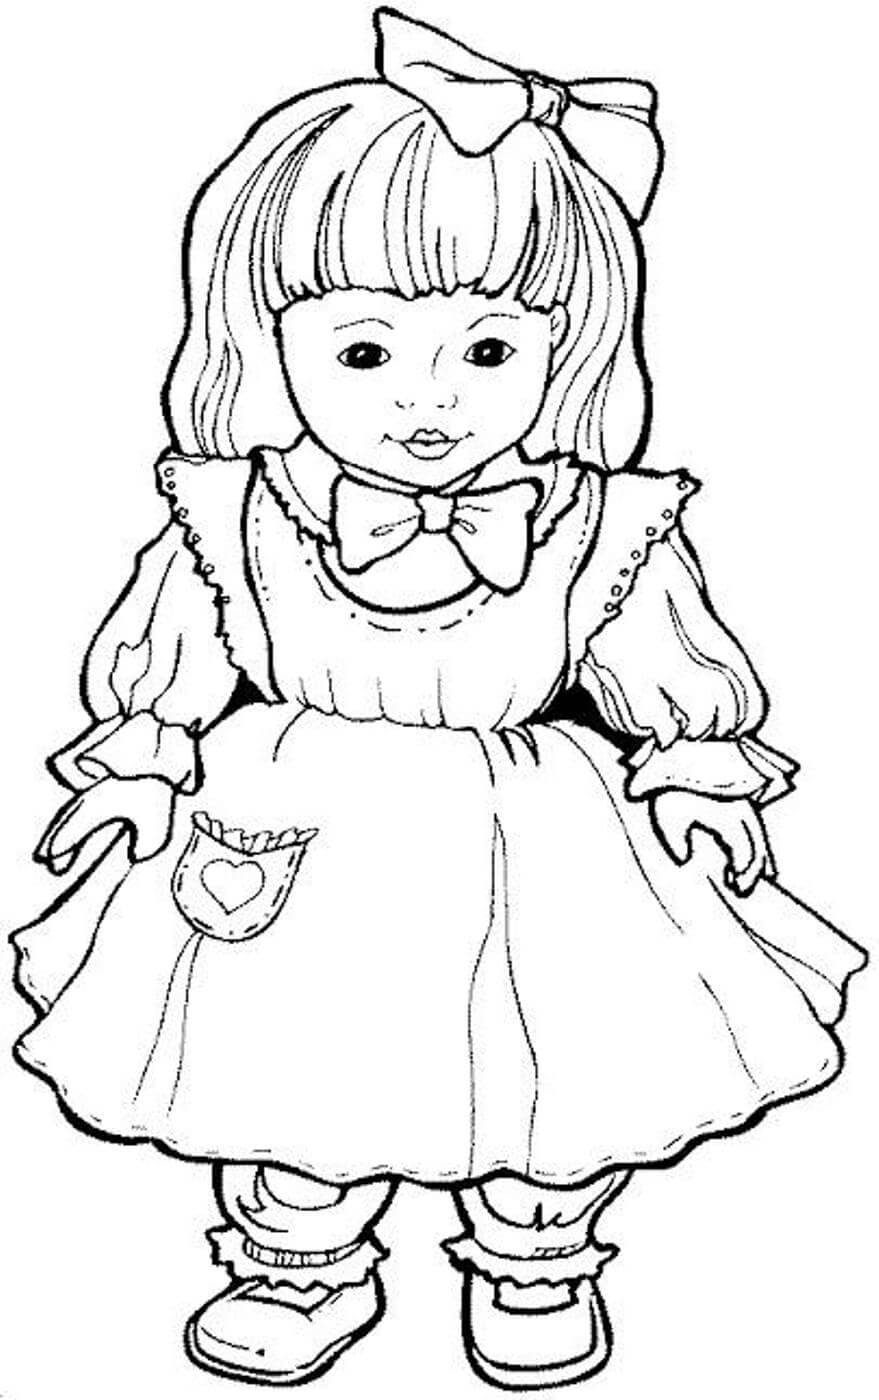 american girl doll coloring pages to print american girl doll coloring pages printable activity shelter coloring print to american pages girl doll